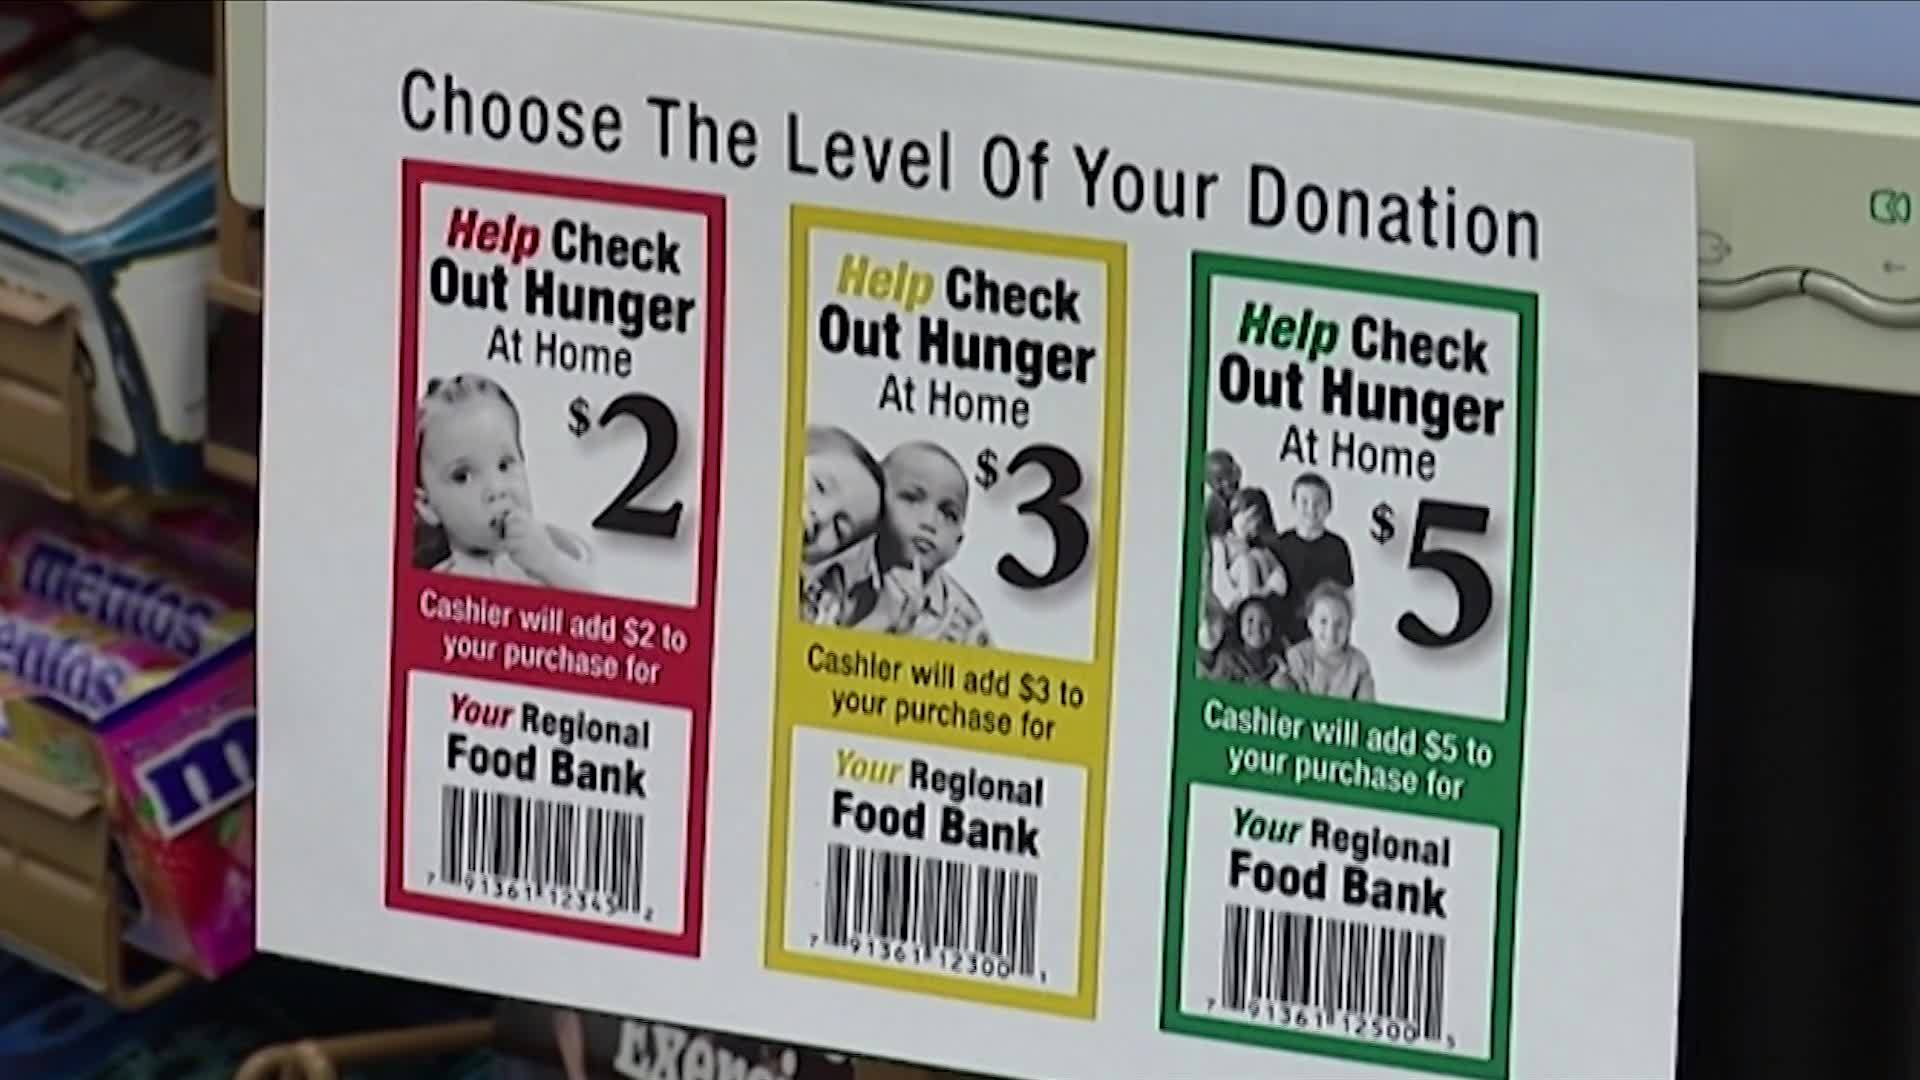 _Check_Out_Hunger__campaign_3_20190128044419